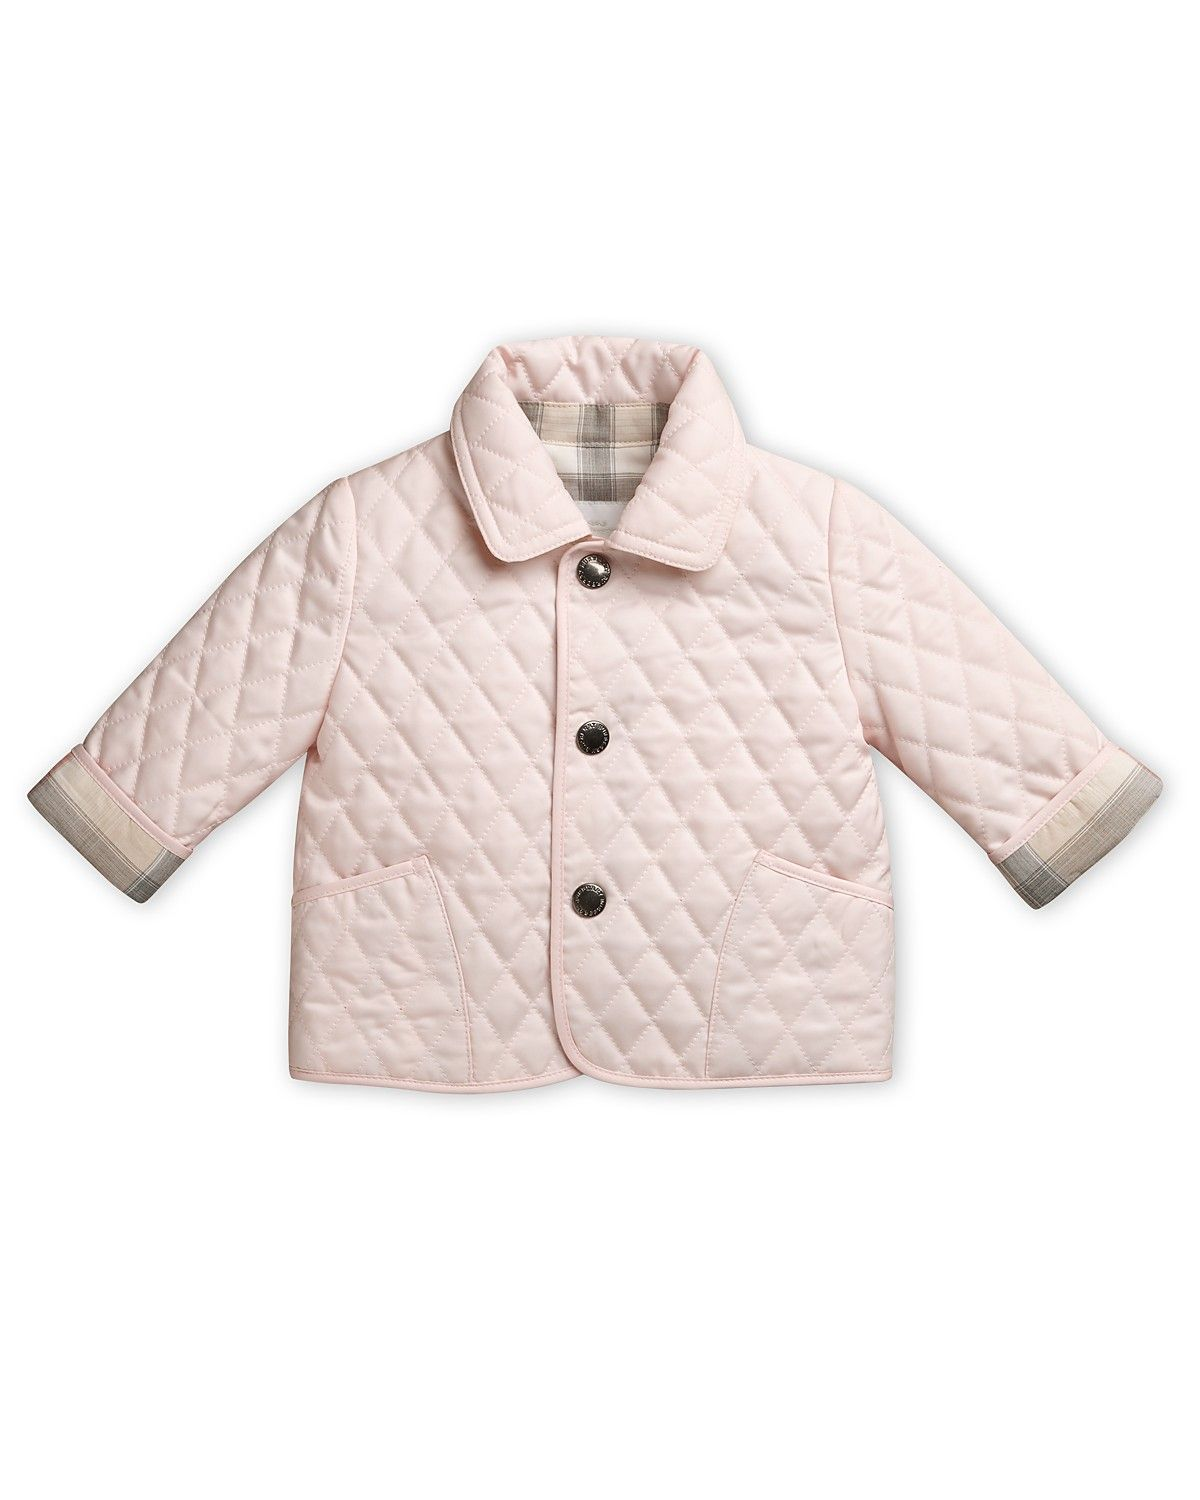 22079113d4c Burberry Infant Girls  Colin Quilted Jacket – Sizes 6-24 Months ...